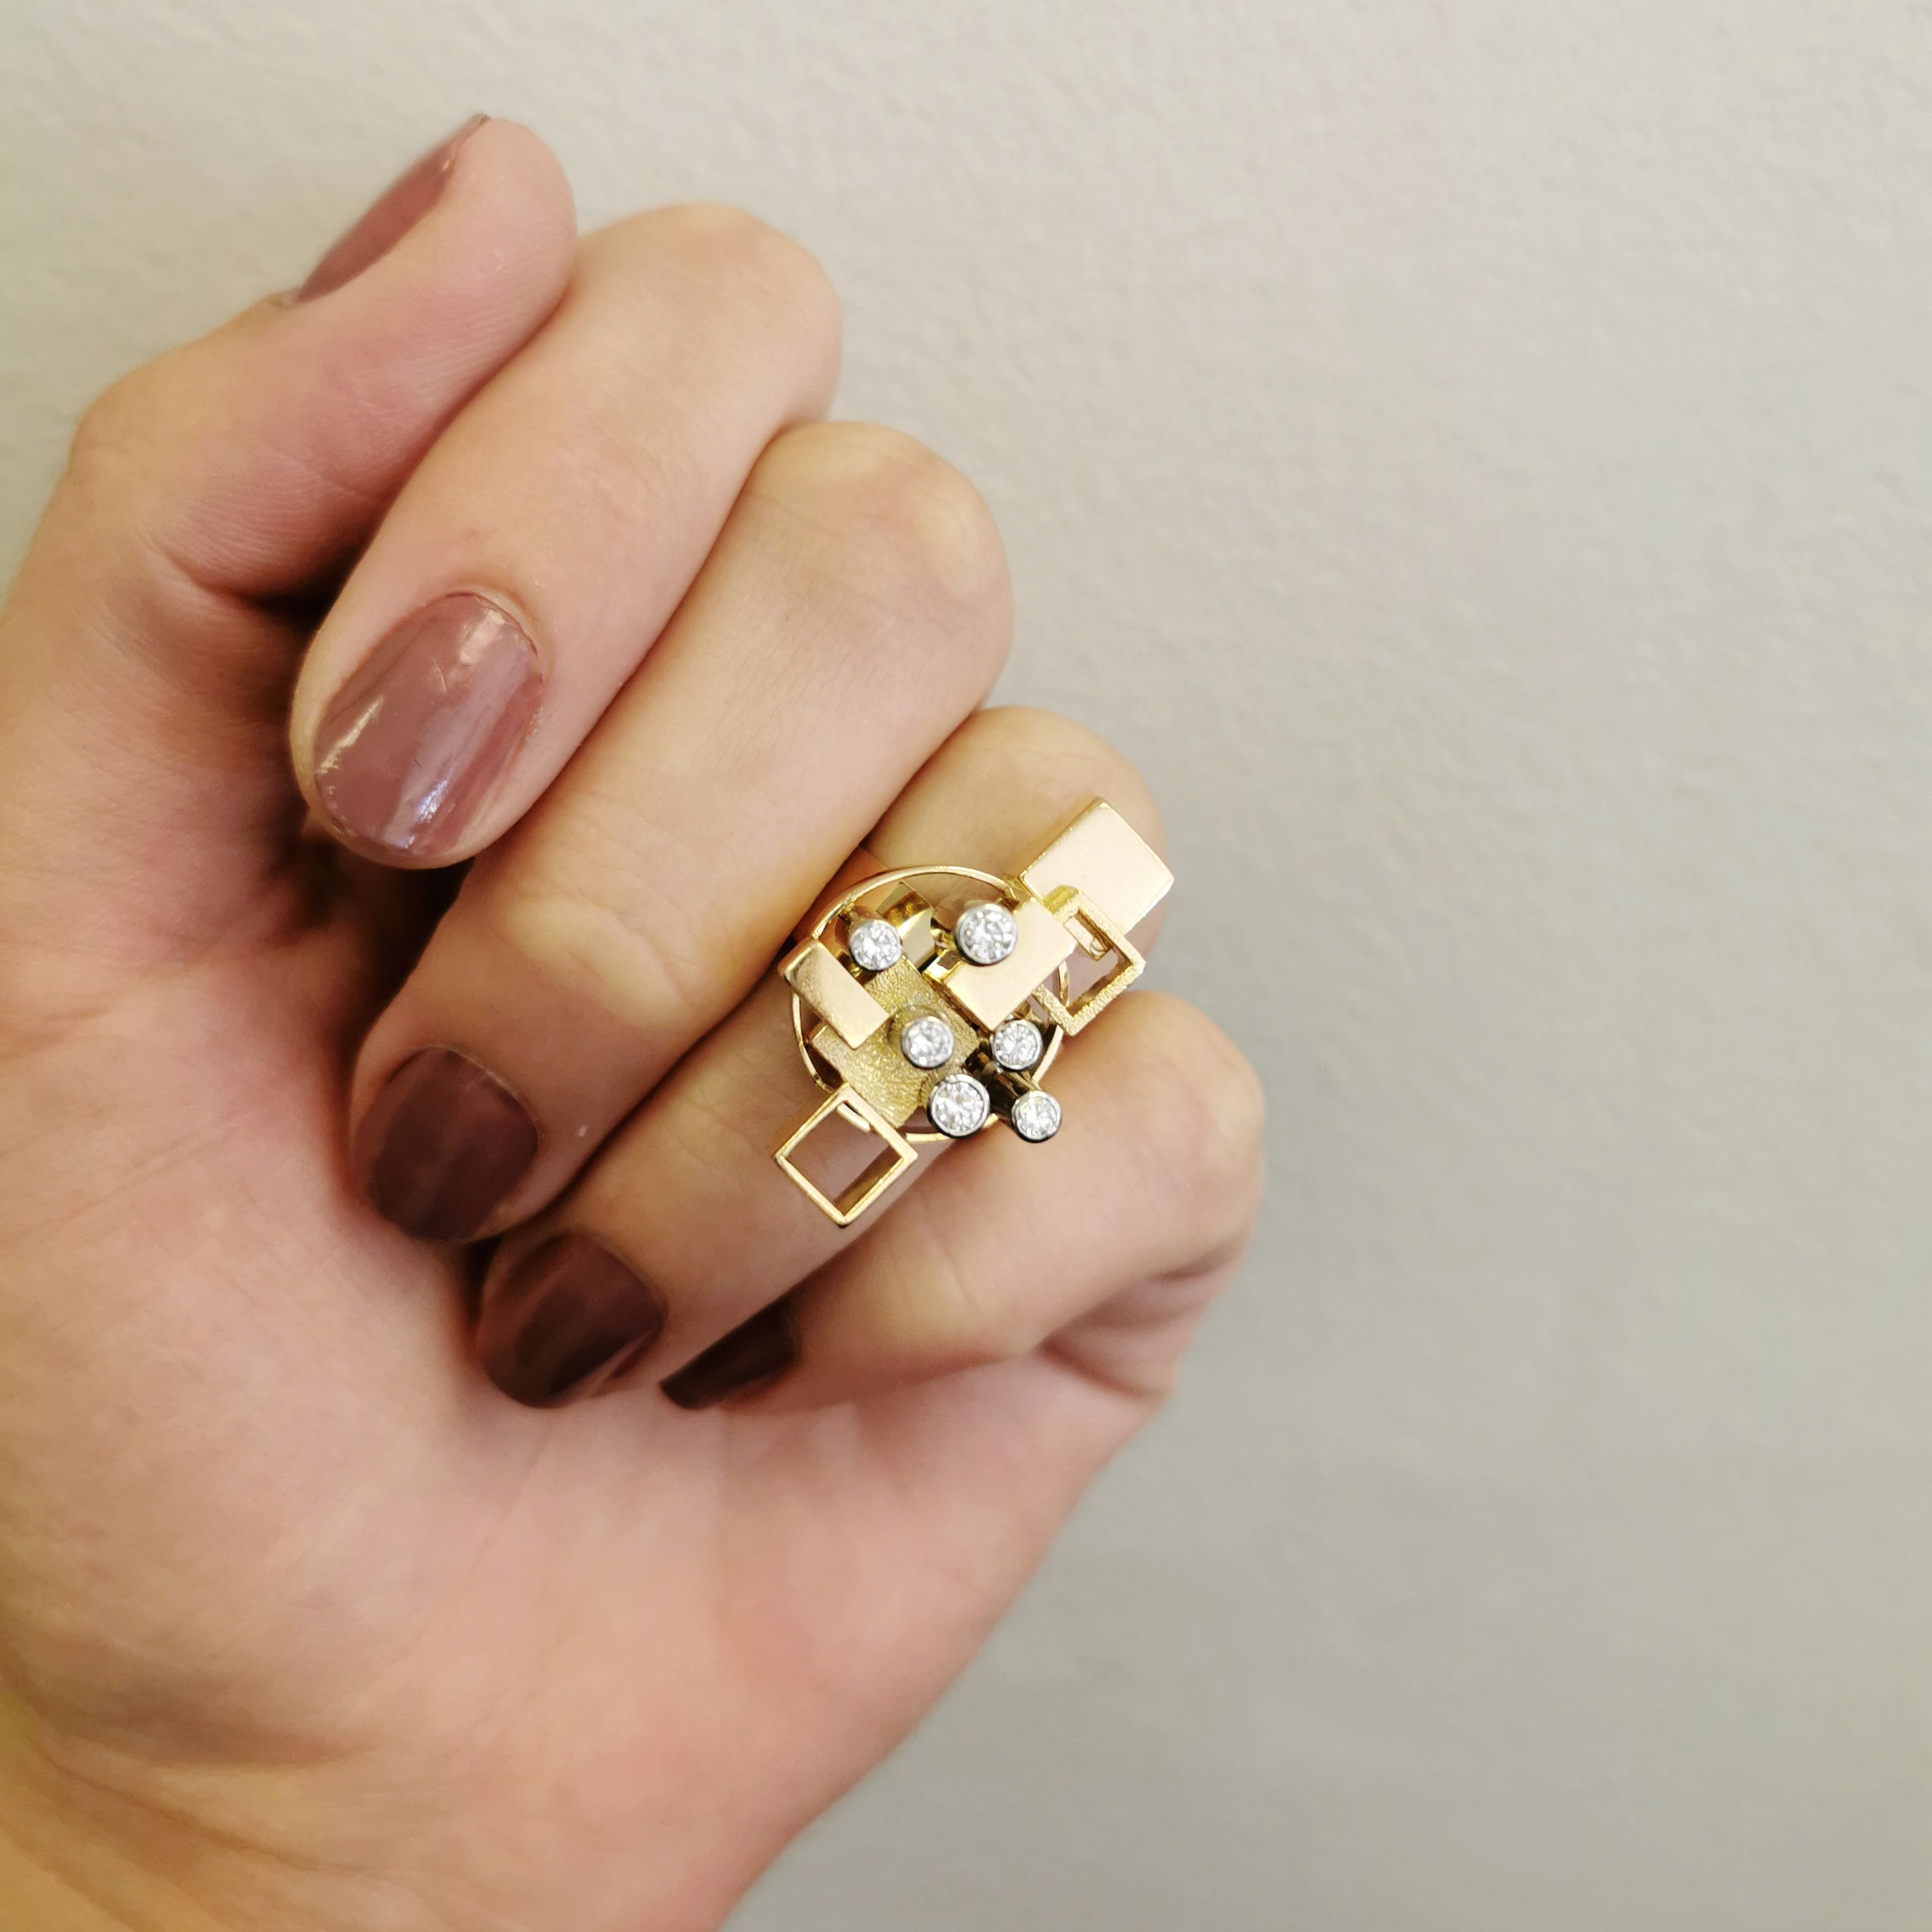 'Cavelti' Geometric Cocktail Ring | 0.32ctw | SZ 6.25 |